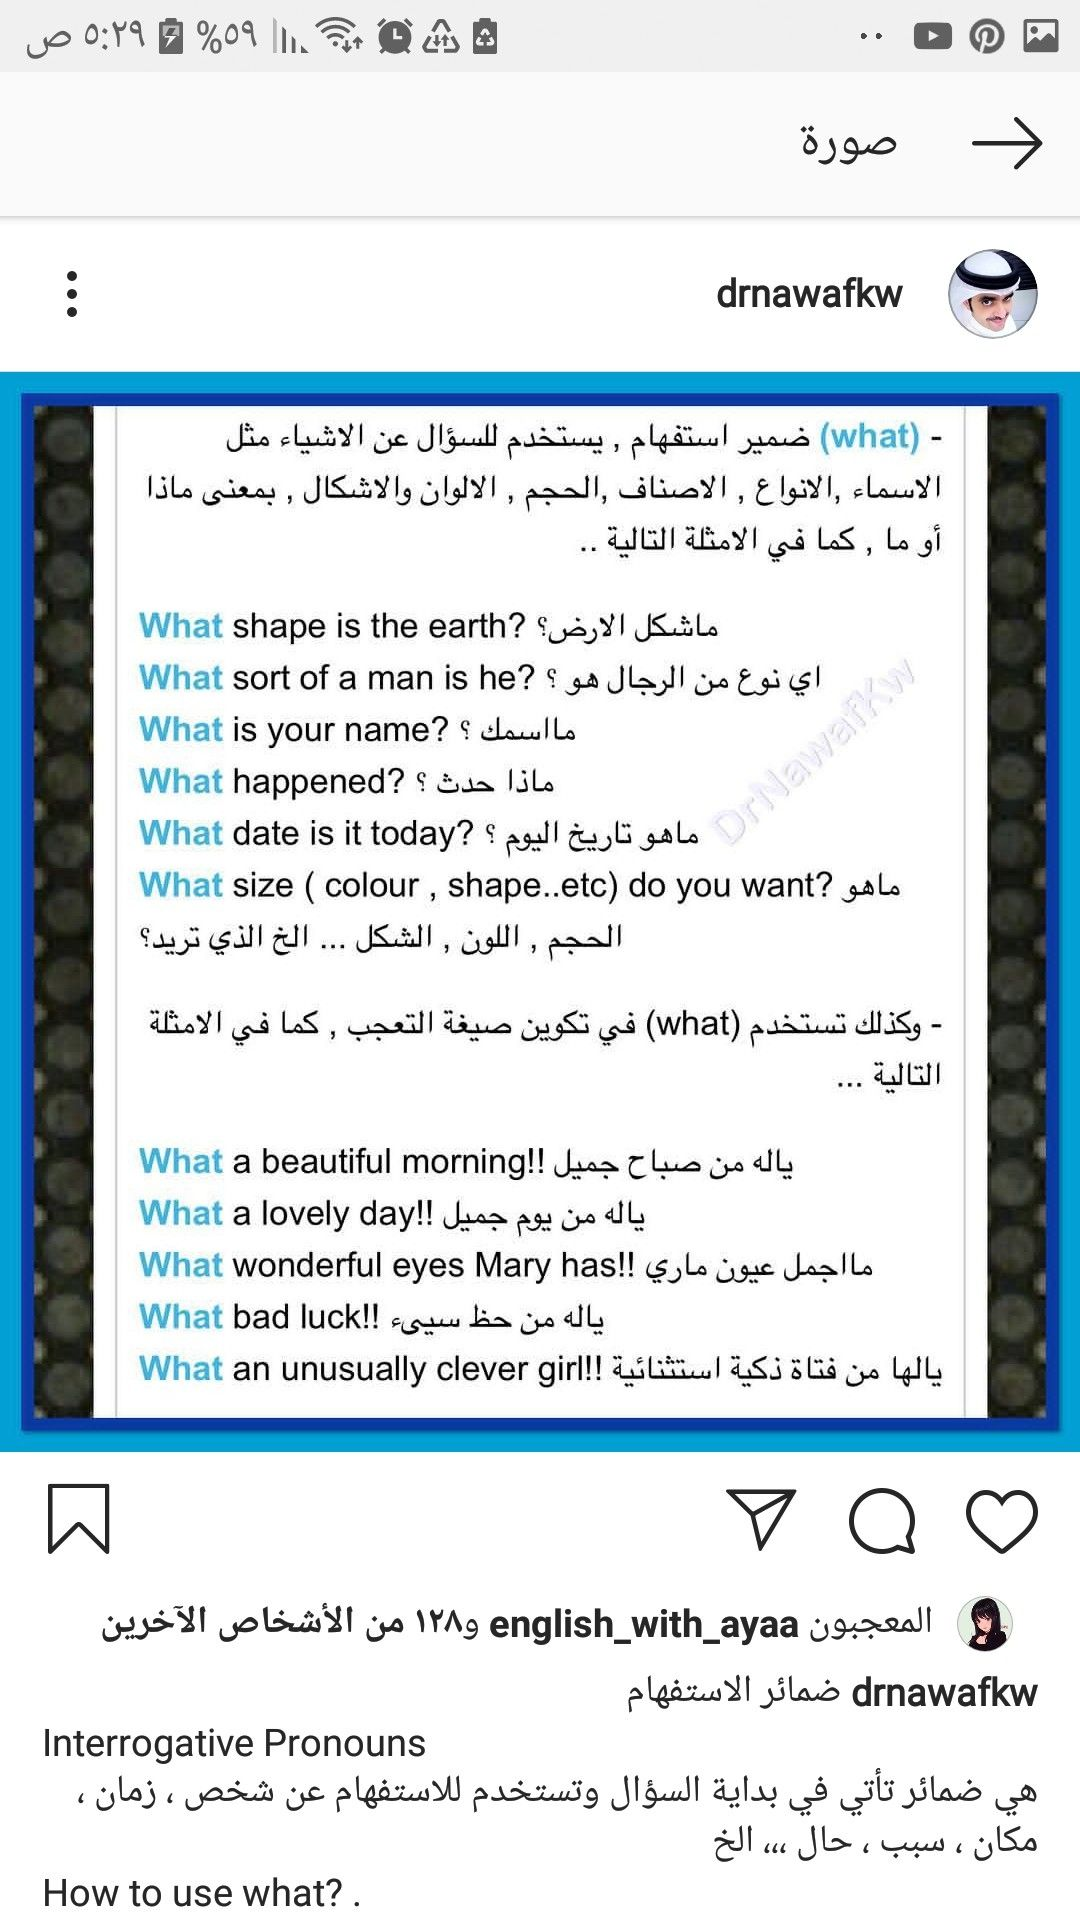 Pin By Paul Whitcher On Arabic Quotes And Caligraphy In 2020 Arabic Sentences Learning Arabic What Is Your Name